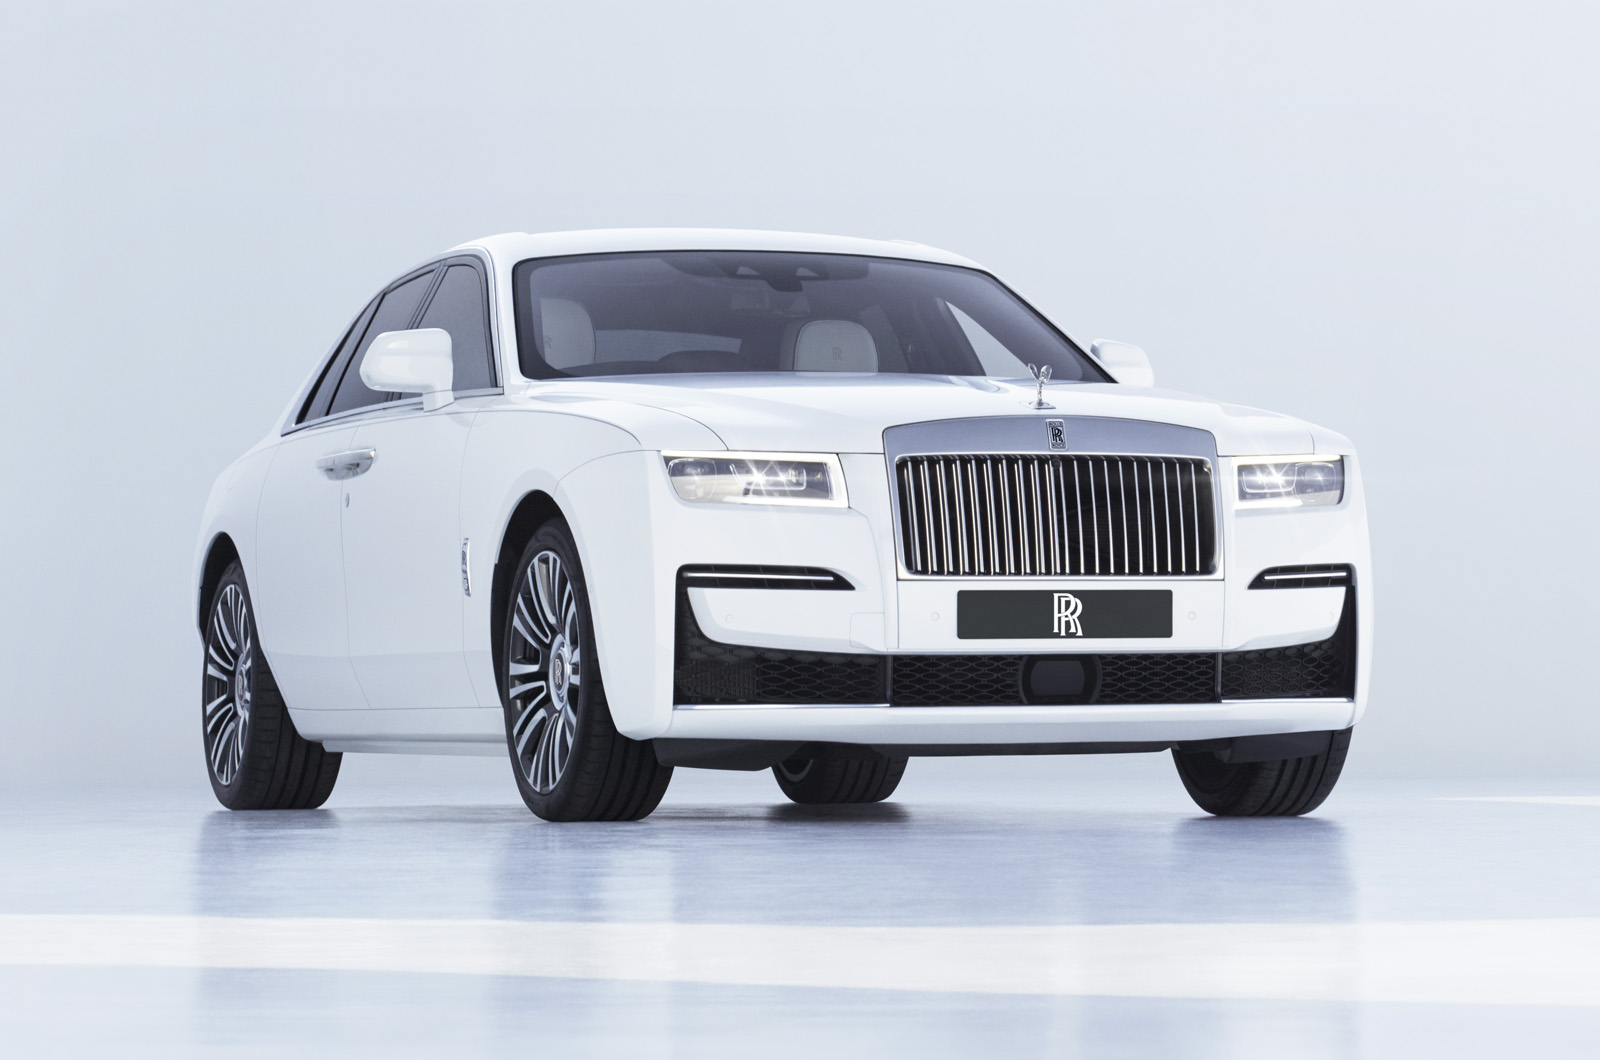 The New Rolls-Royce Ghost Is The Luxury Marque's Most Important New Car -  VuuzleTV.com